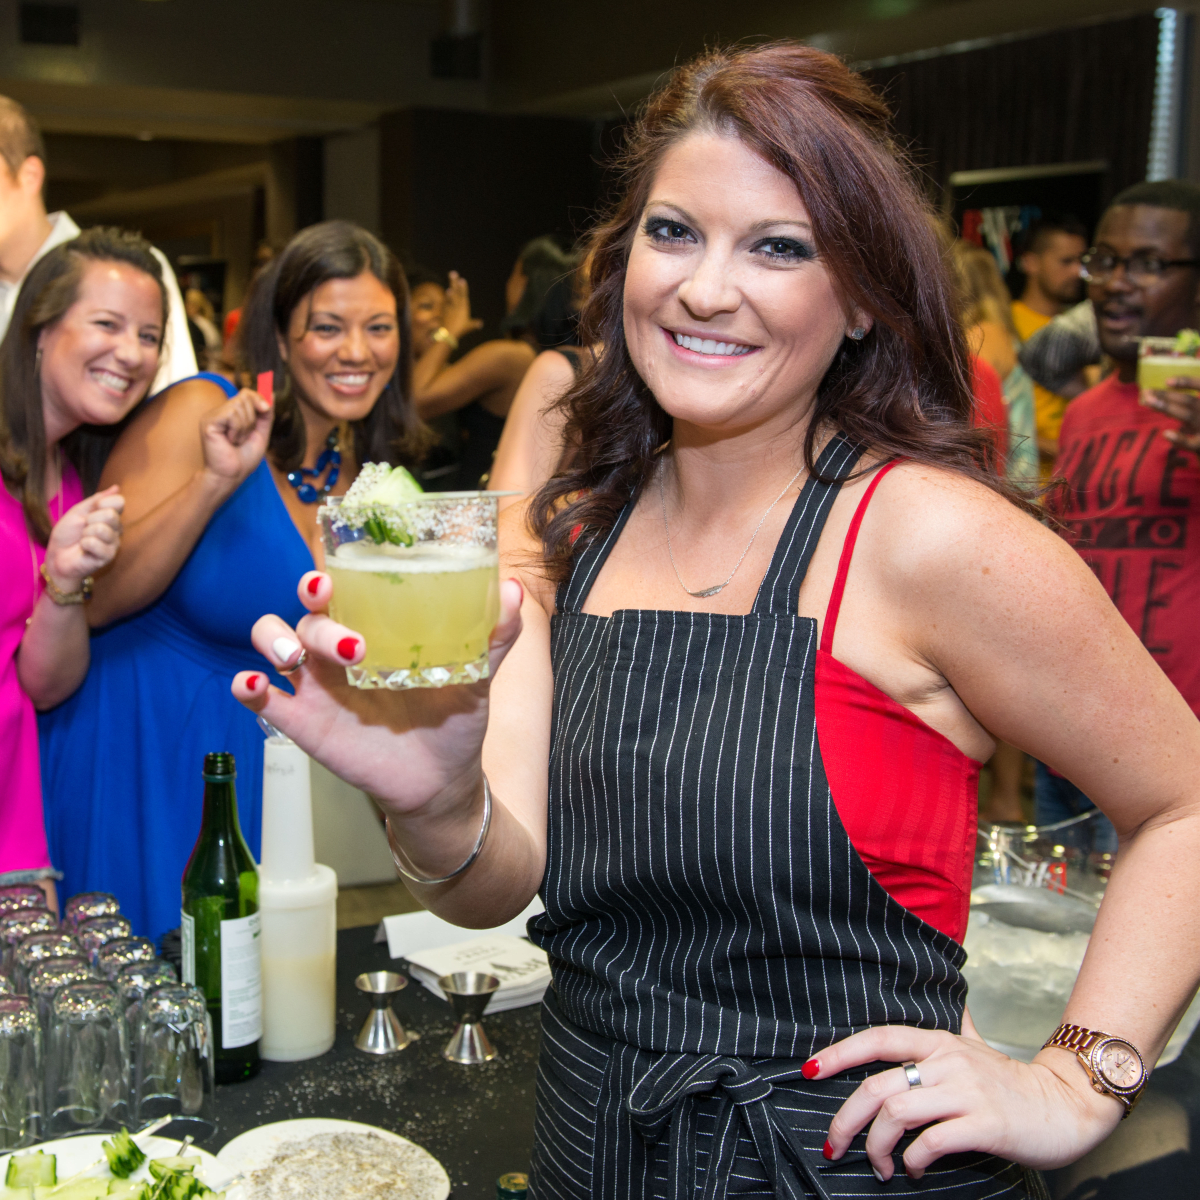 13 Brittany Austin at the Crafted mixology contest at Mr. Peeples July 2014